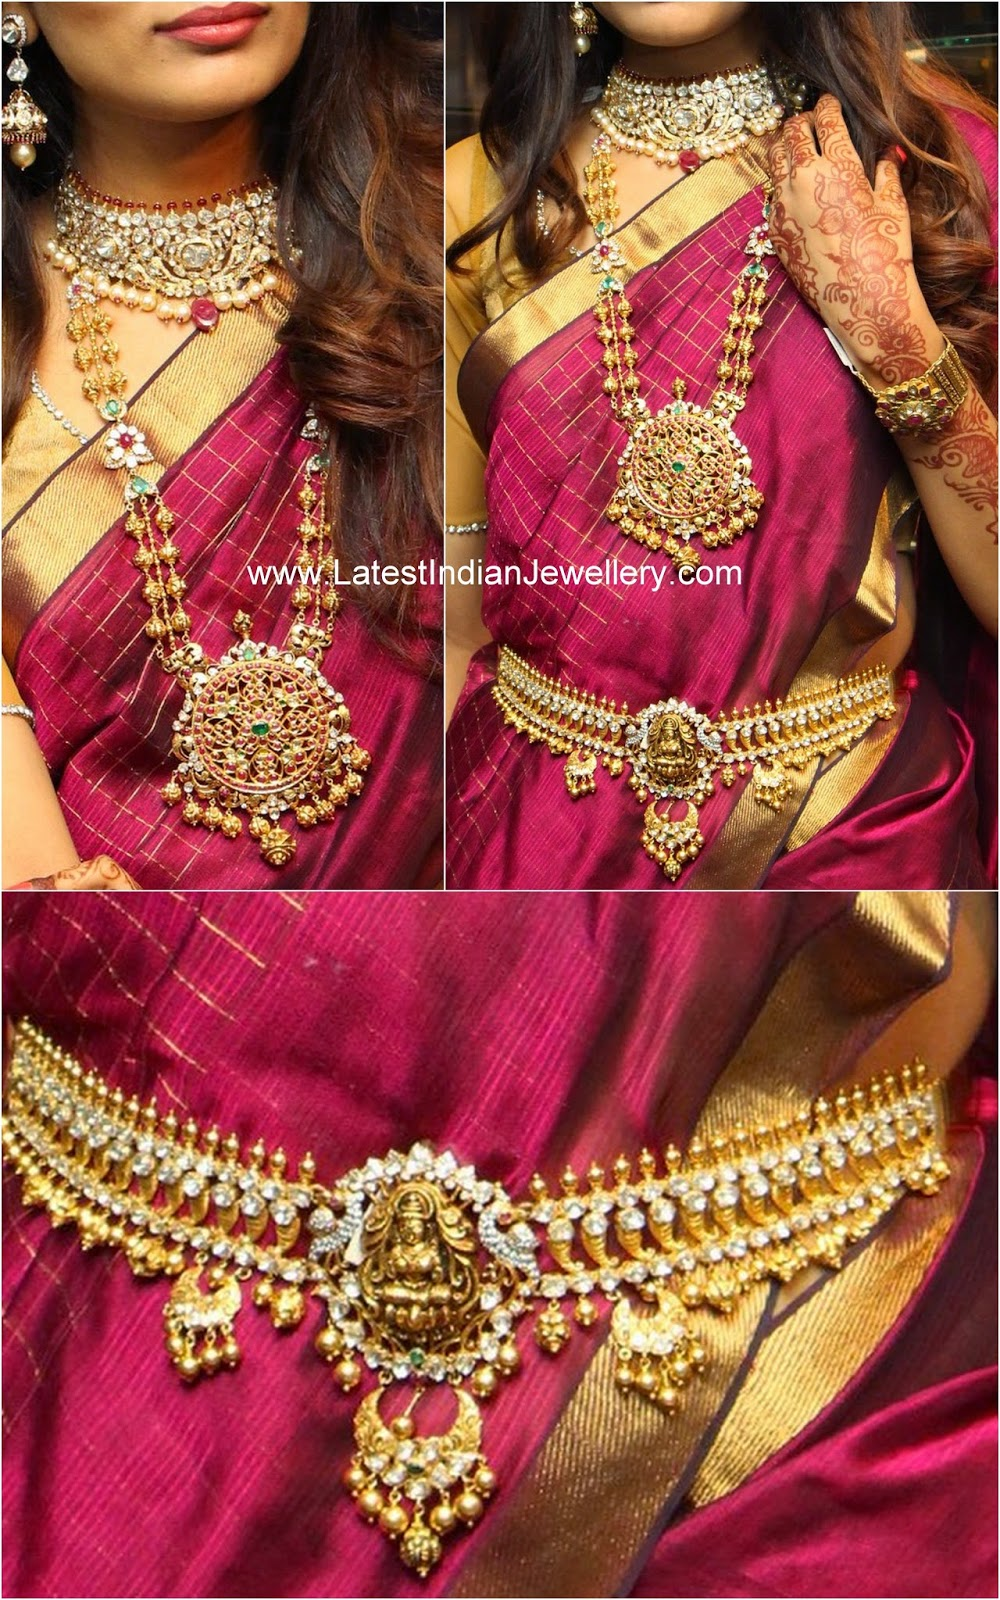 Model In Polki Diamond Bridal Jewellery Latest Indian